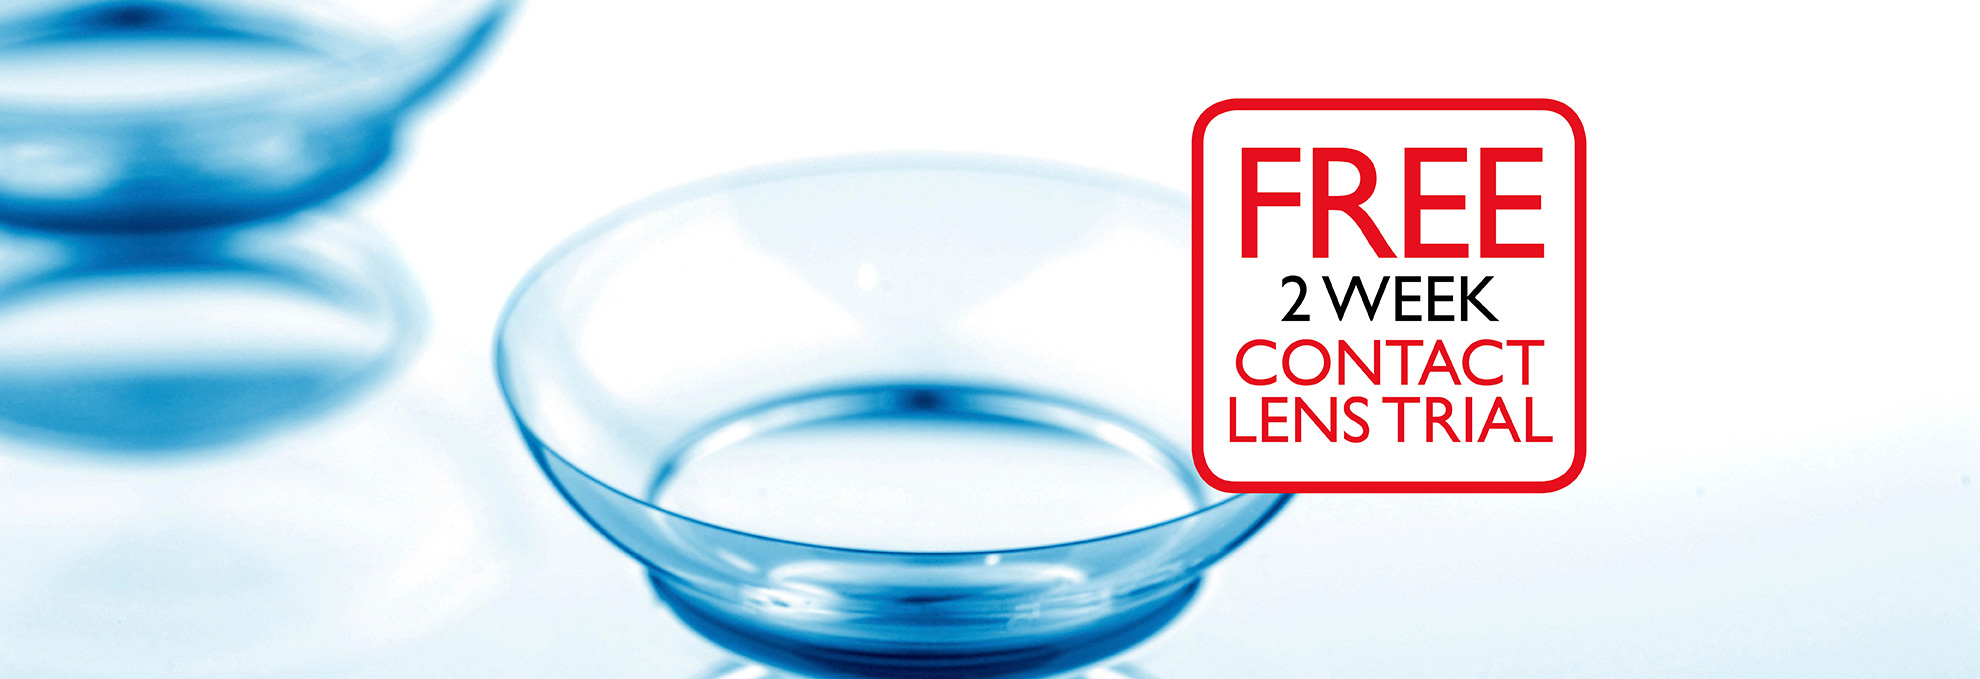 Free 2 Week Contact Lens Trial